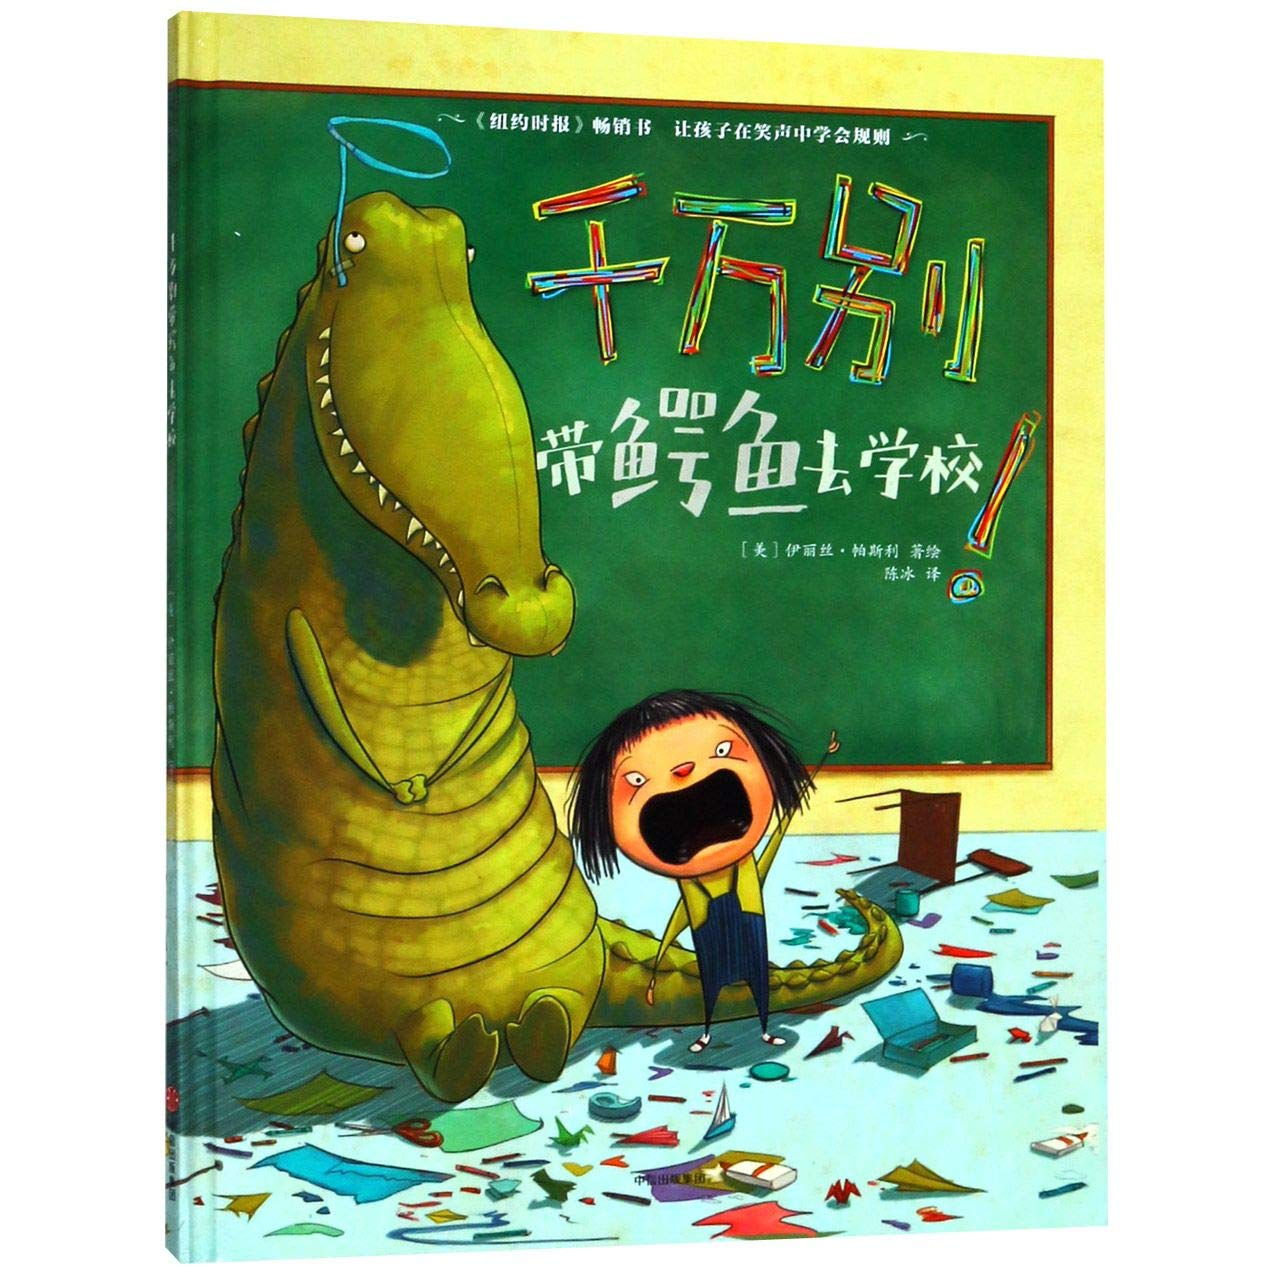 If You Ever Want To Bring An Alligator To School, Don't! (Magnolia Says DON'T!) (Chinese Edition)